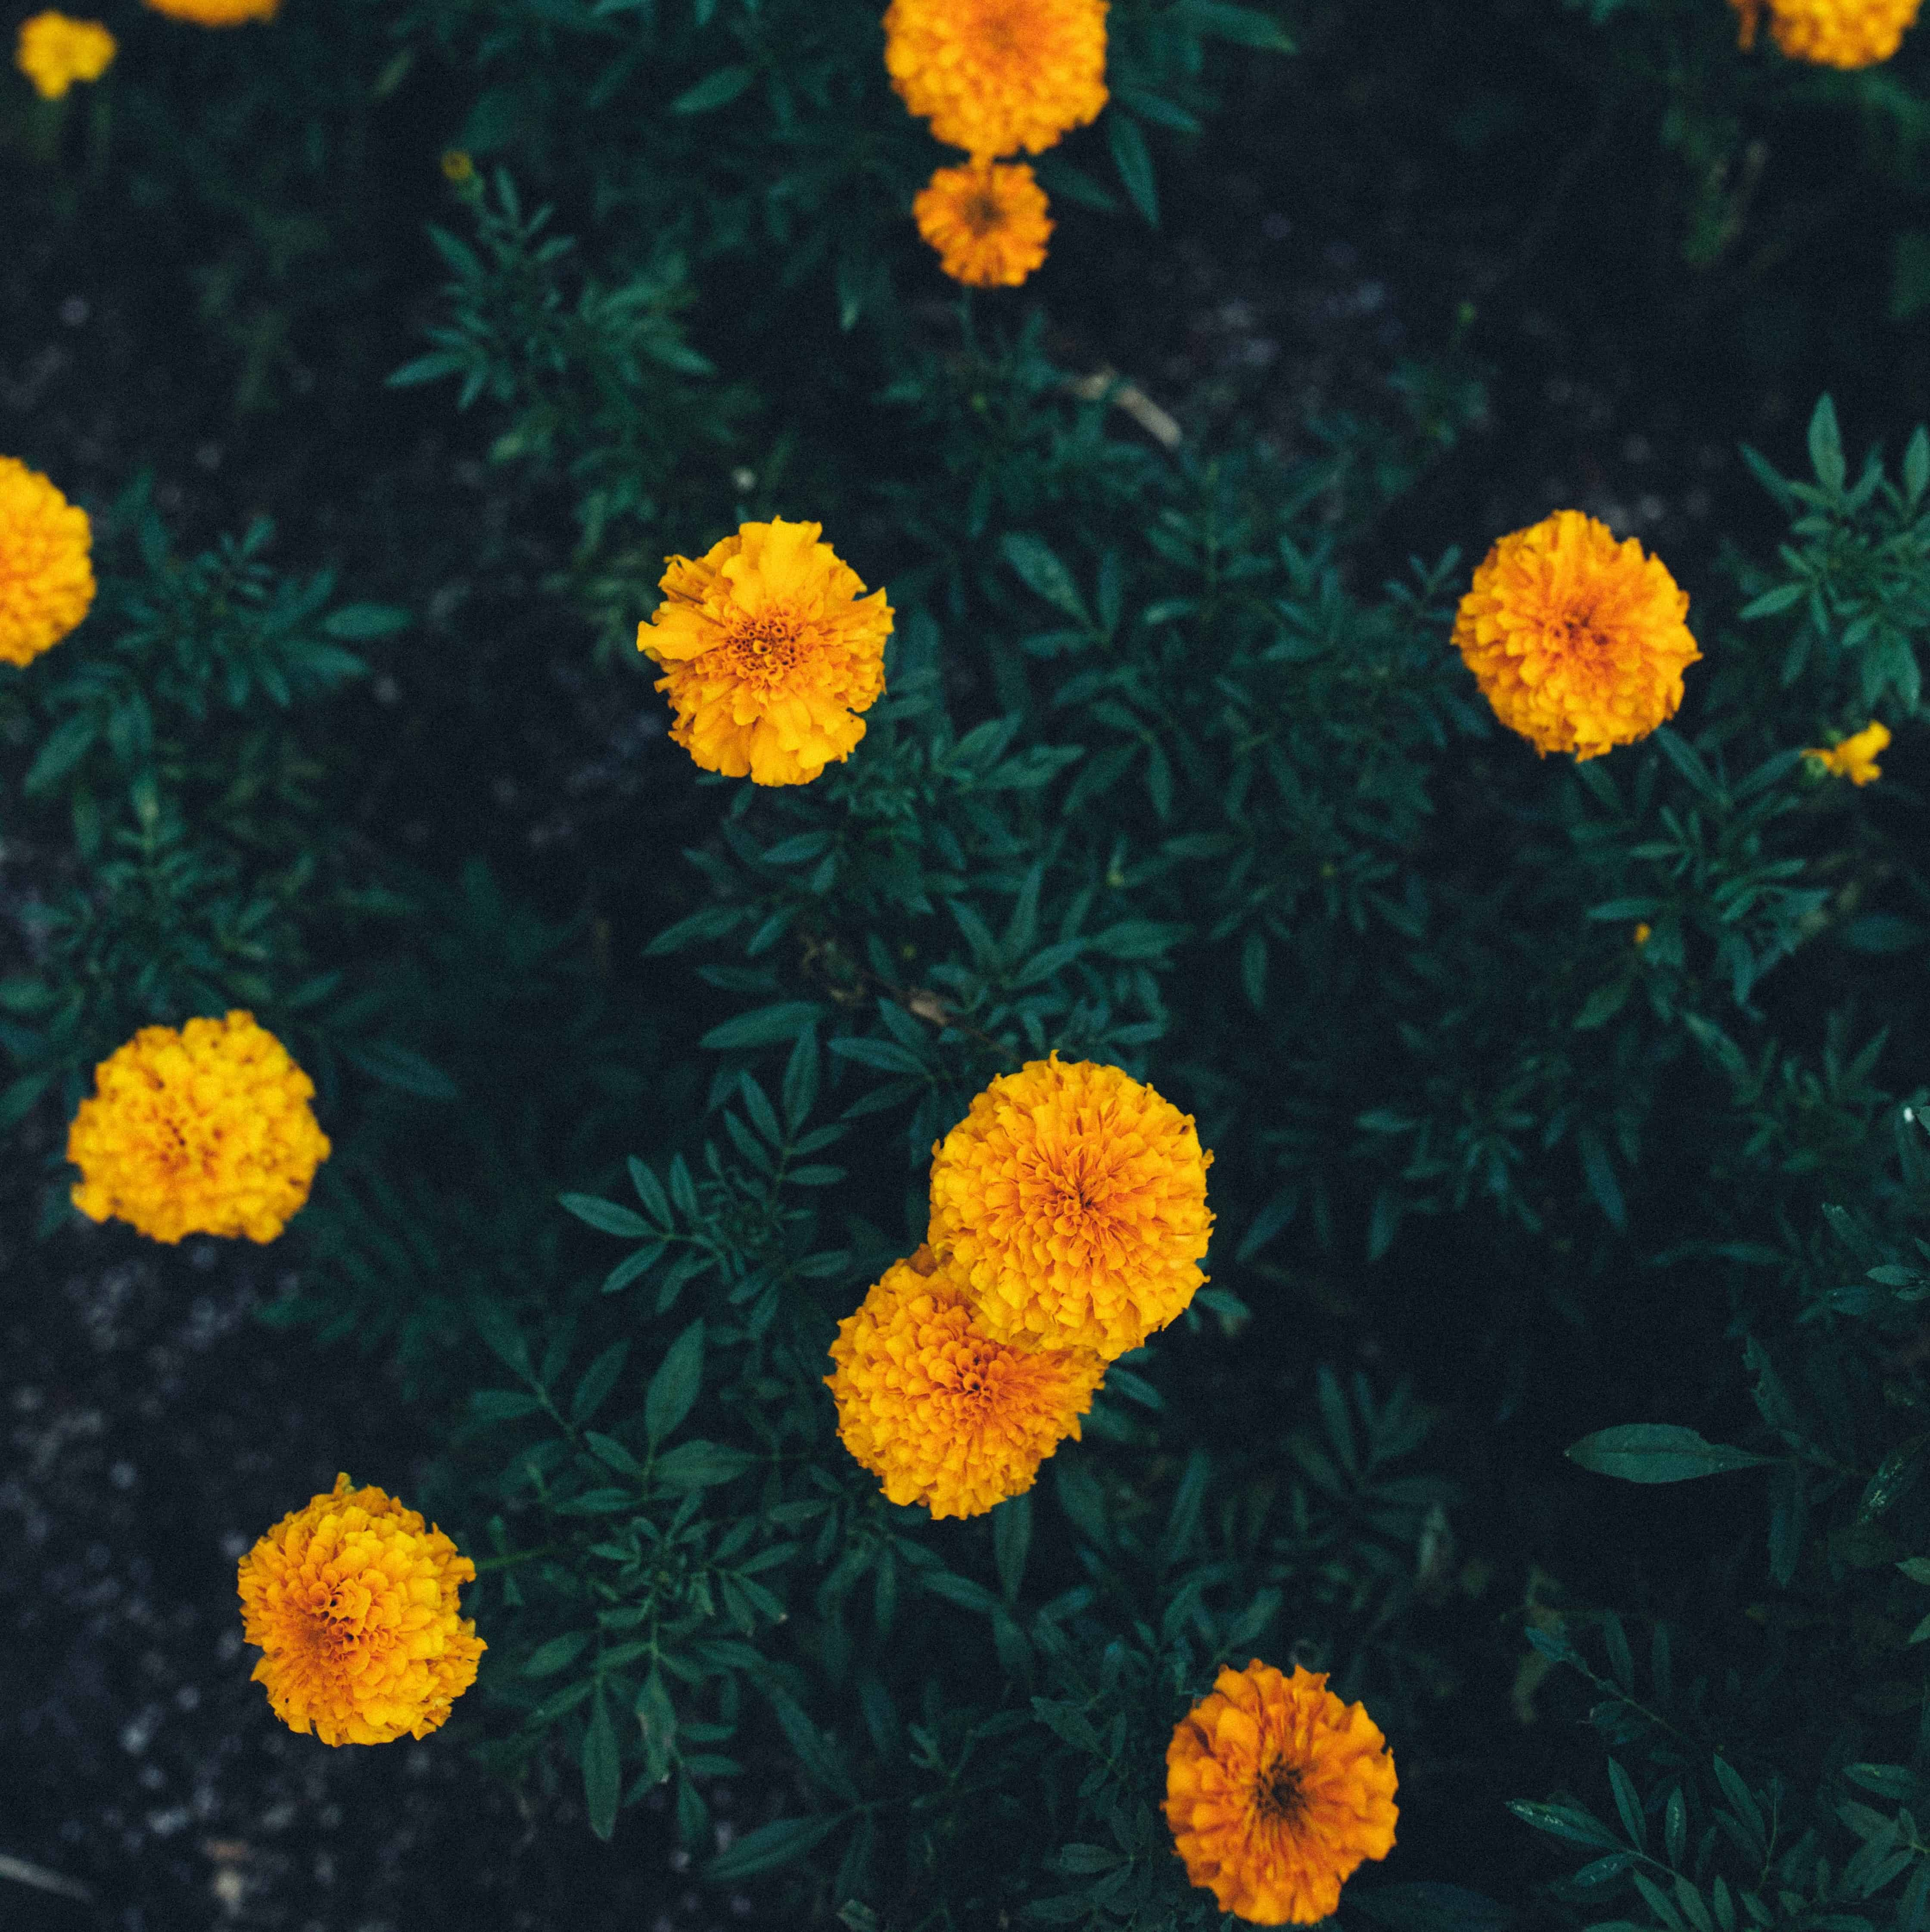 Patch of marigolds